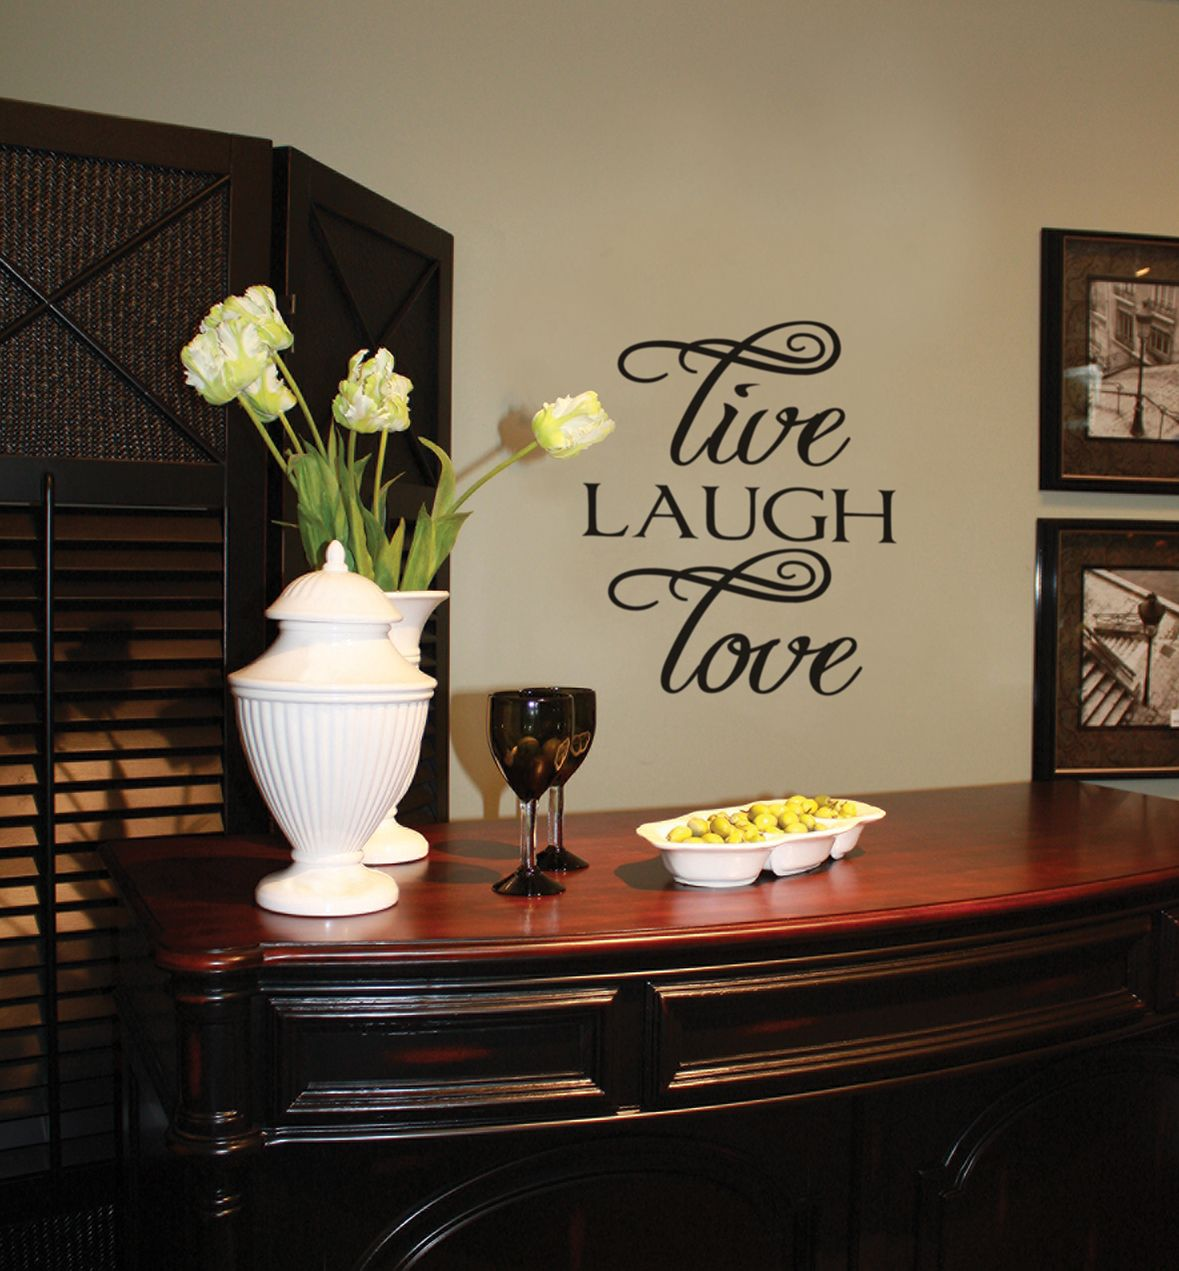 Live Laugh Love //www.simplysaiddesigns.com/simplysaiddesigns ... on